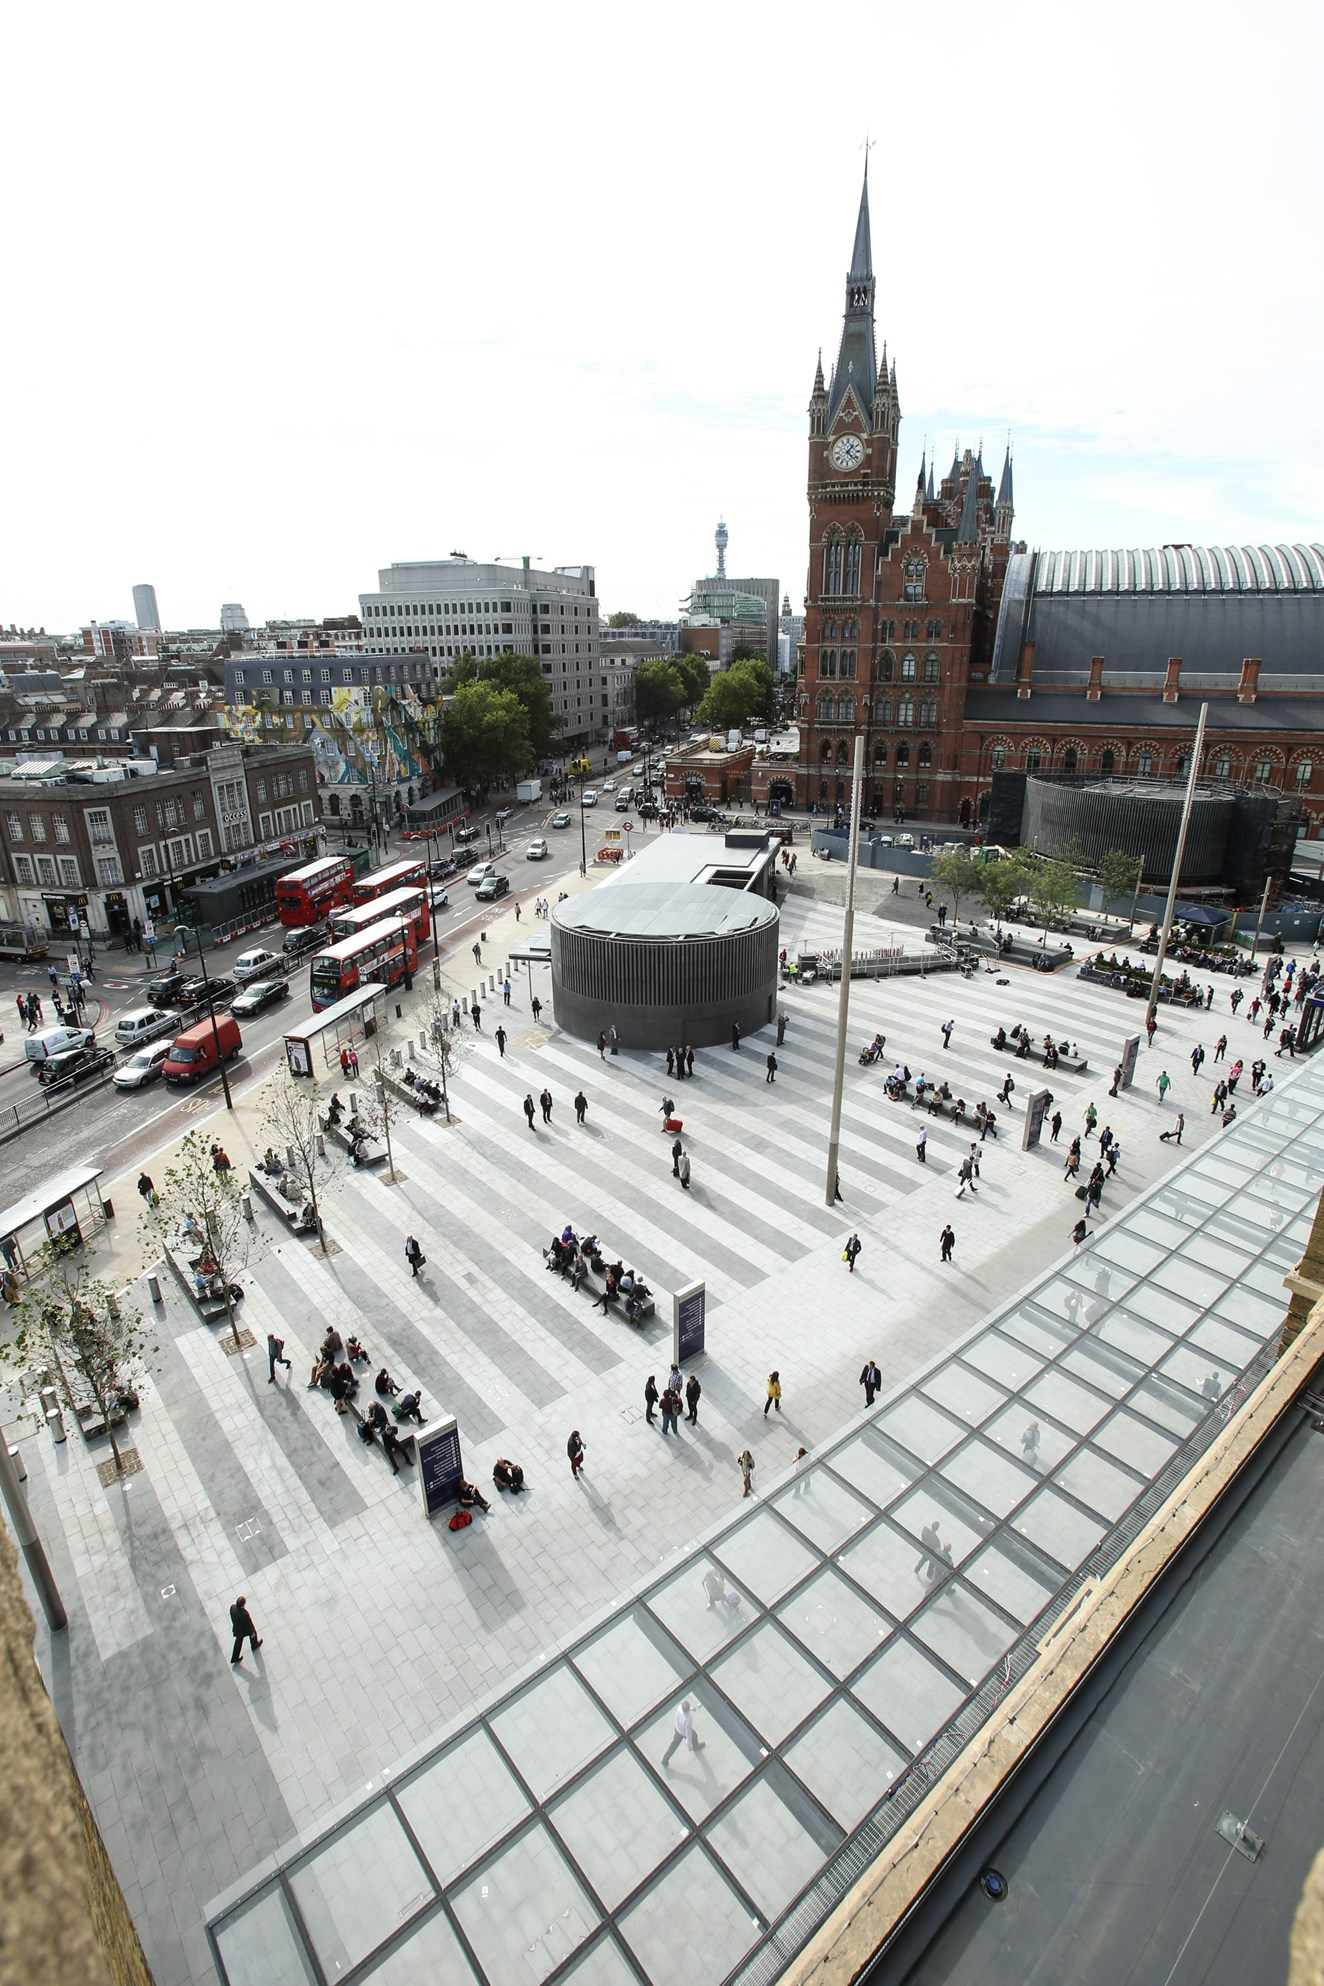 Start of a new chapter for King's Cross - London's newest public space is declared open: Launch of King's Cross Square